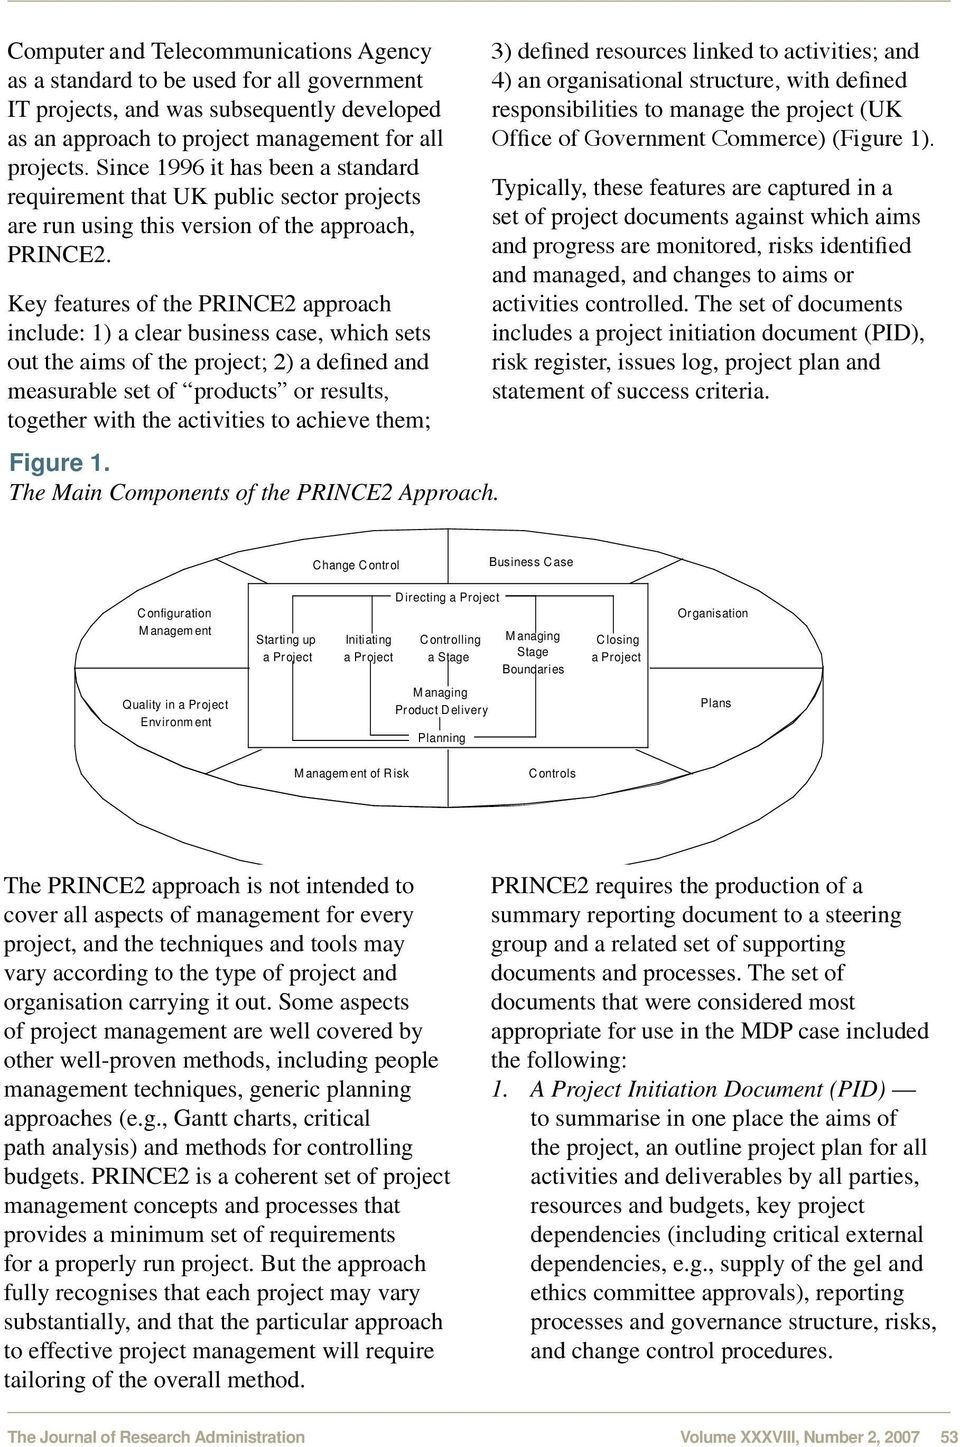 Key features of the PRINCE2 approach include: 1) a clear business case, which sets out the aims of the project; 2) a defined and measurable set of products or results, together with the activities to